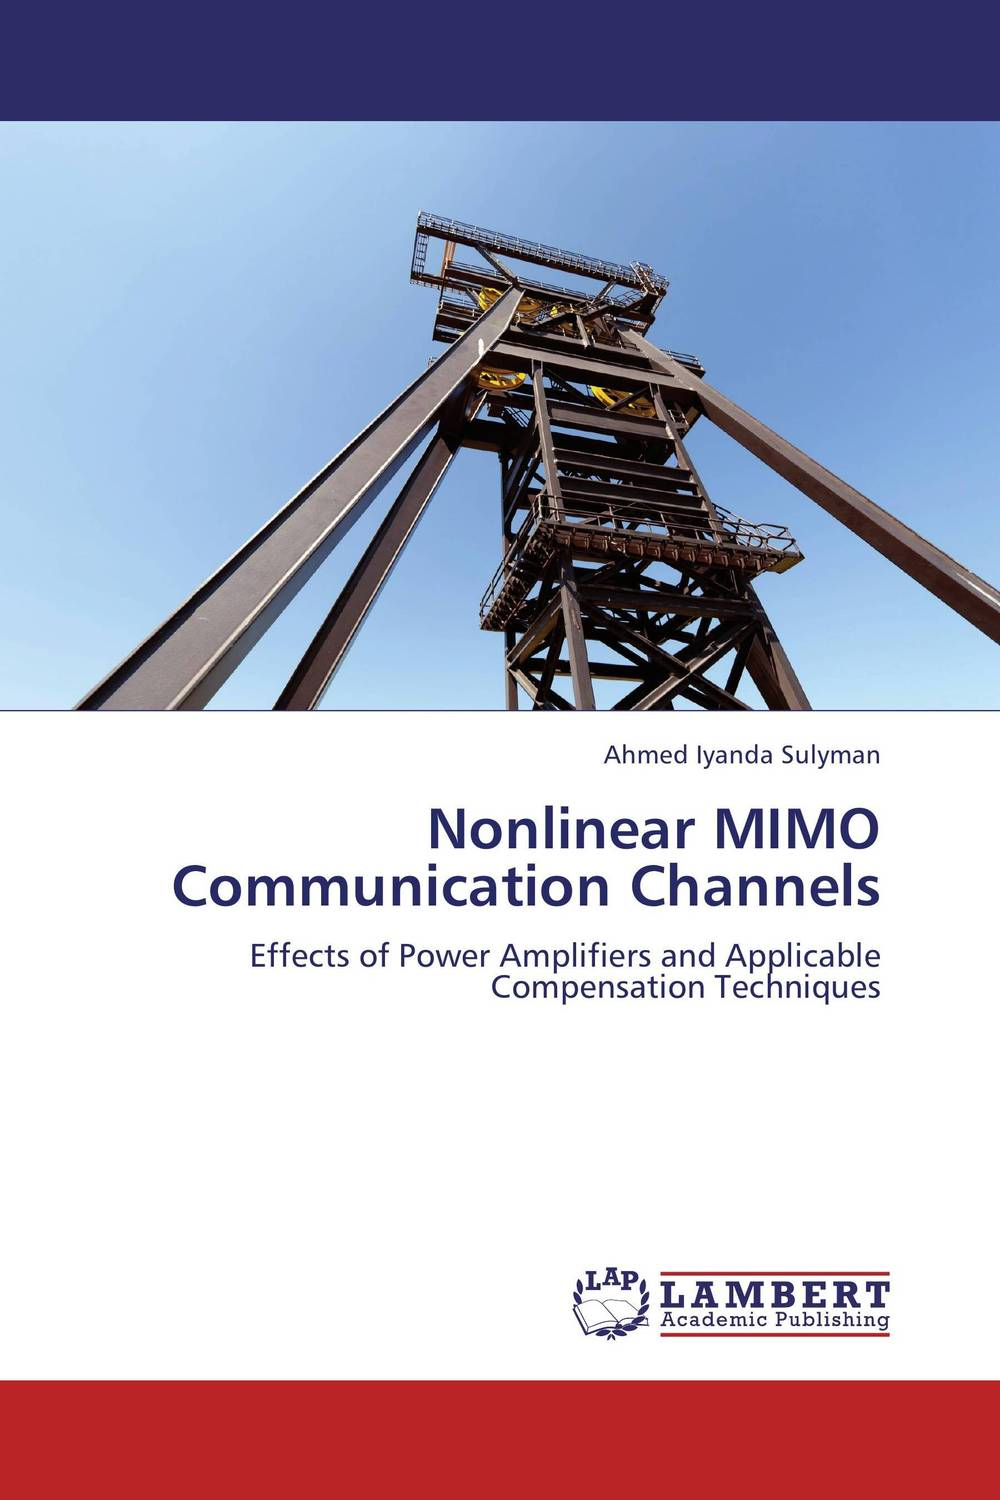 Nonlinear MIMO Communication Channels